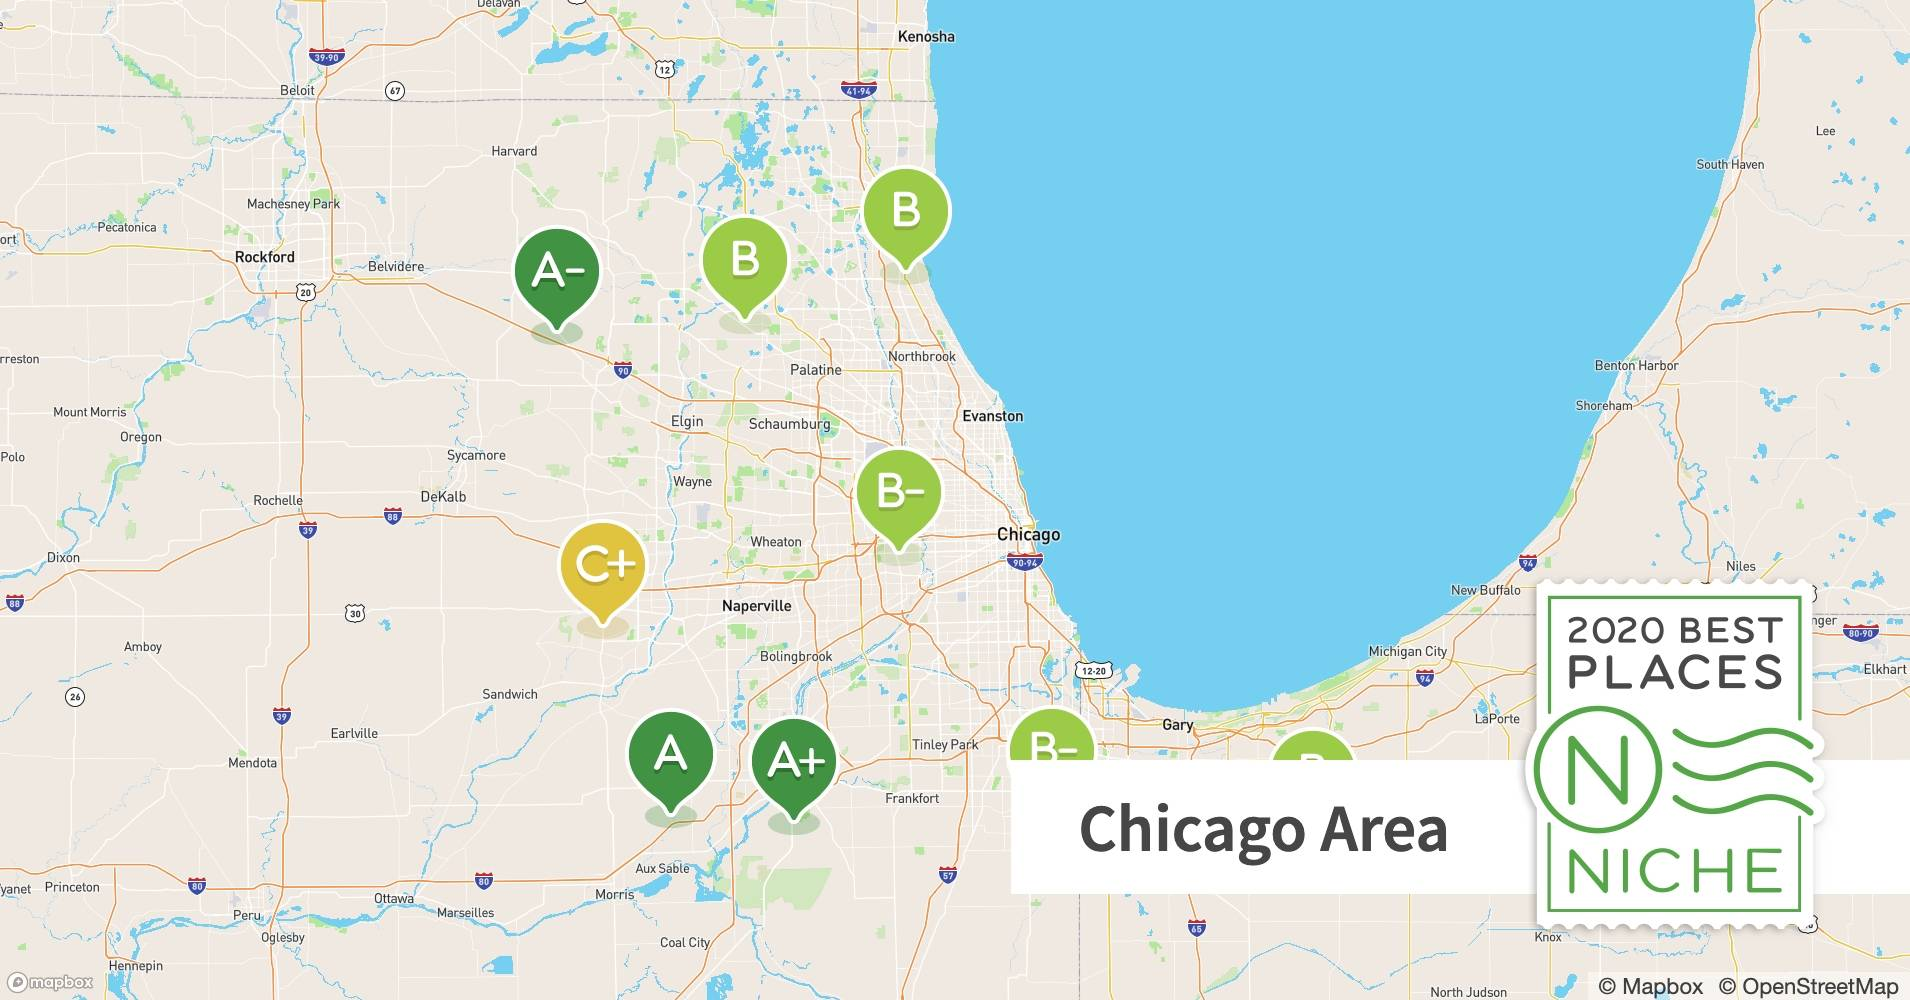 Areas To Avoid In Chicago Map 2020 2020 Best Chicago Area Suburbs to Live   Niche